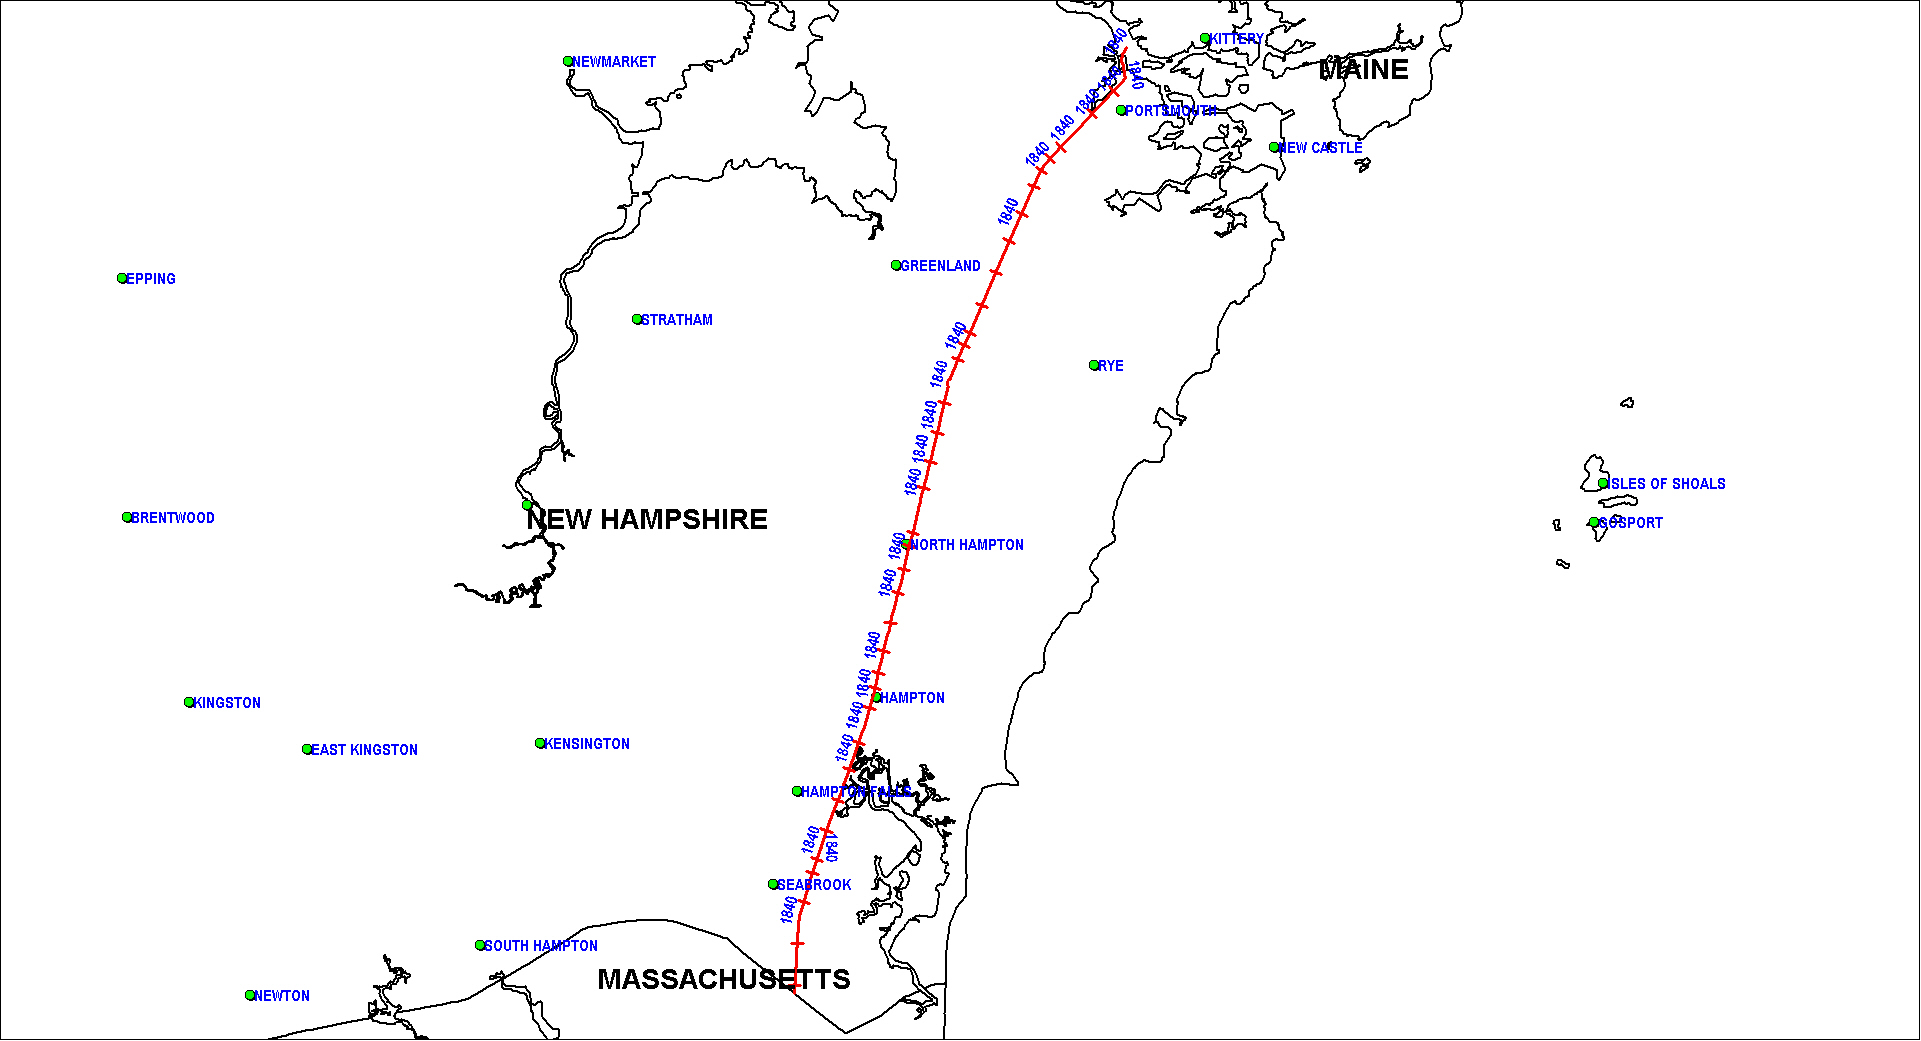 Eastern Railroad of New Hampshire Map as of 1850